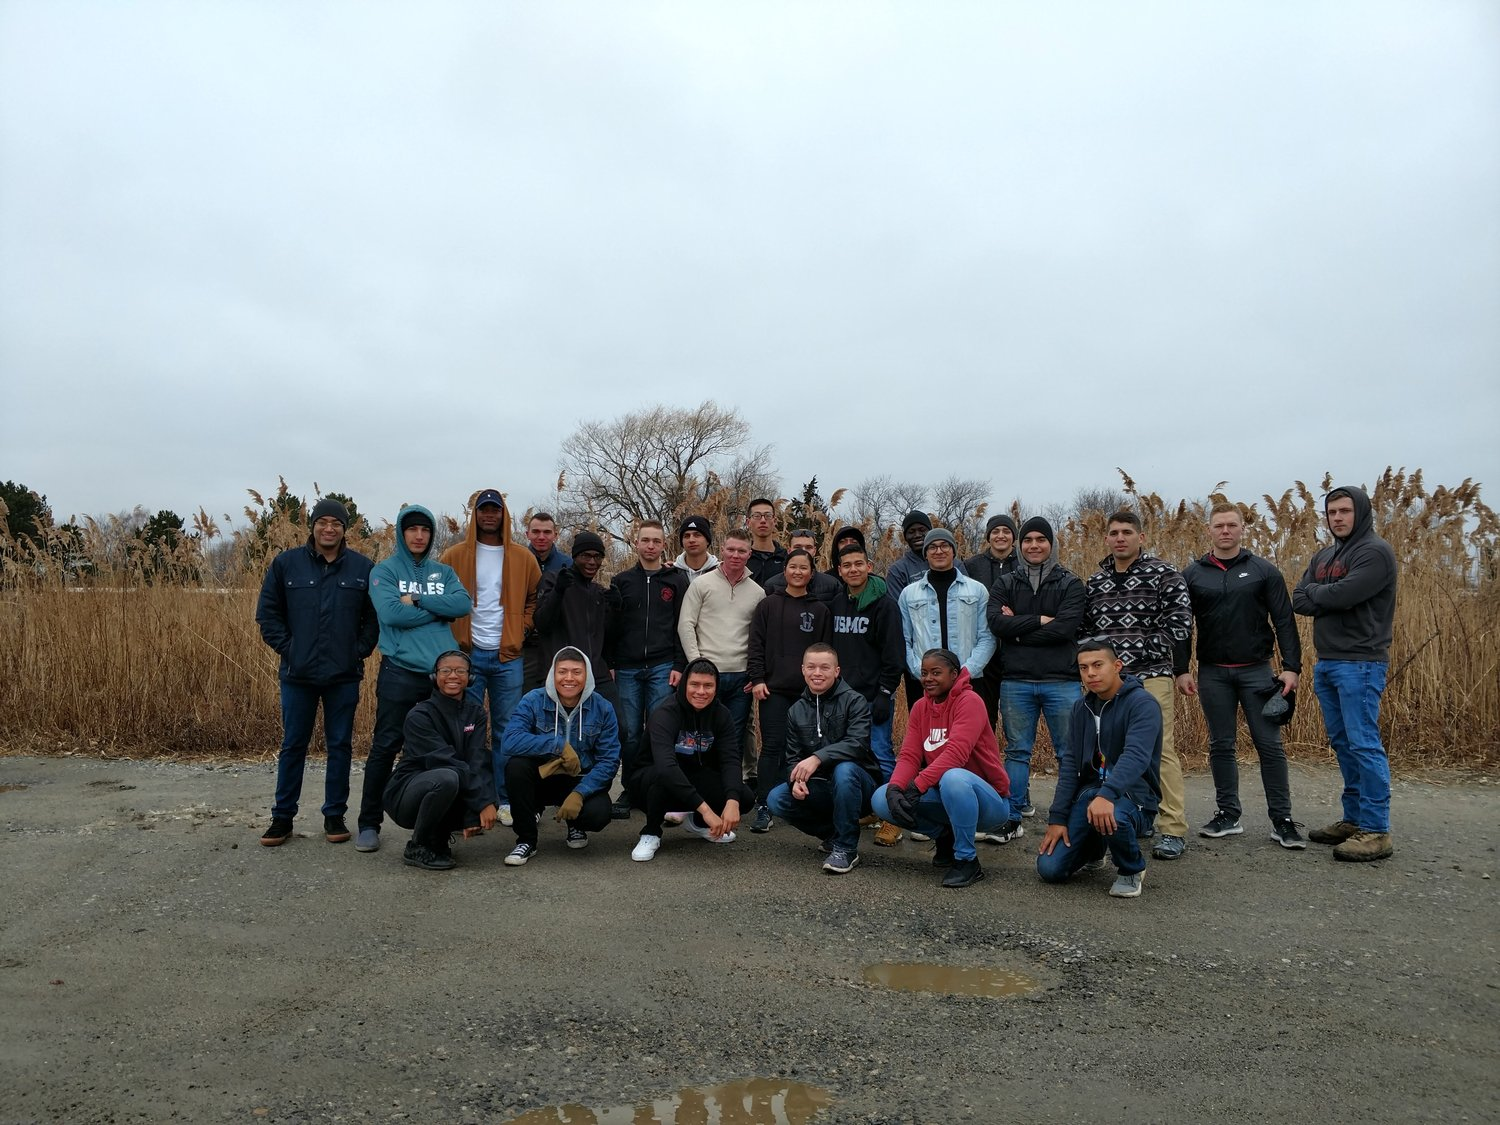 More than two dozen students from the Newport Navy Academy volunteered at the cleanup.